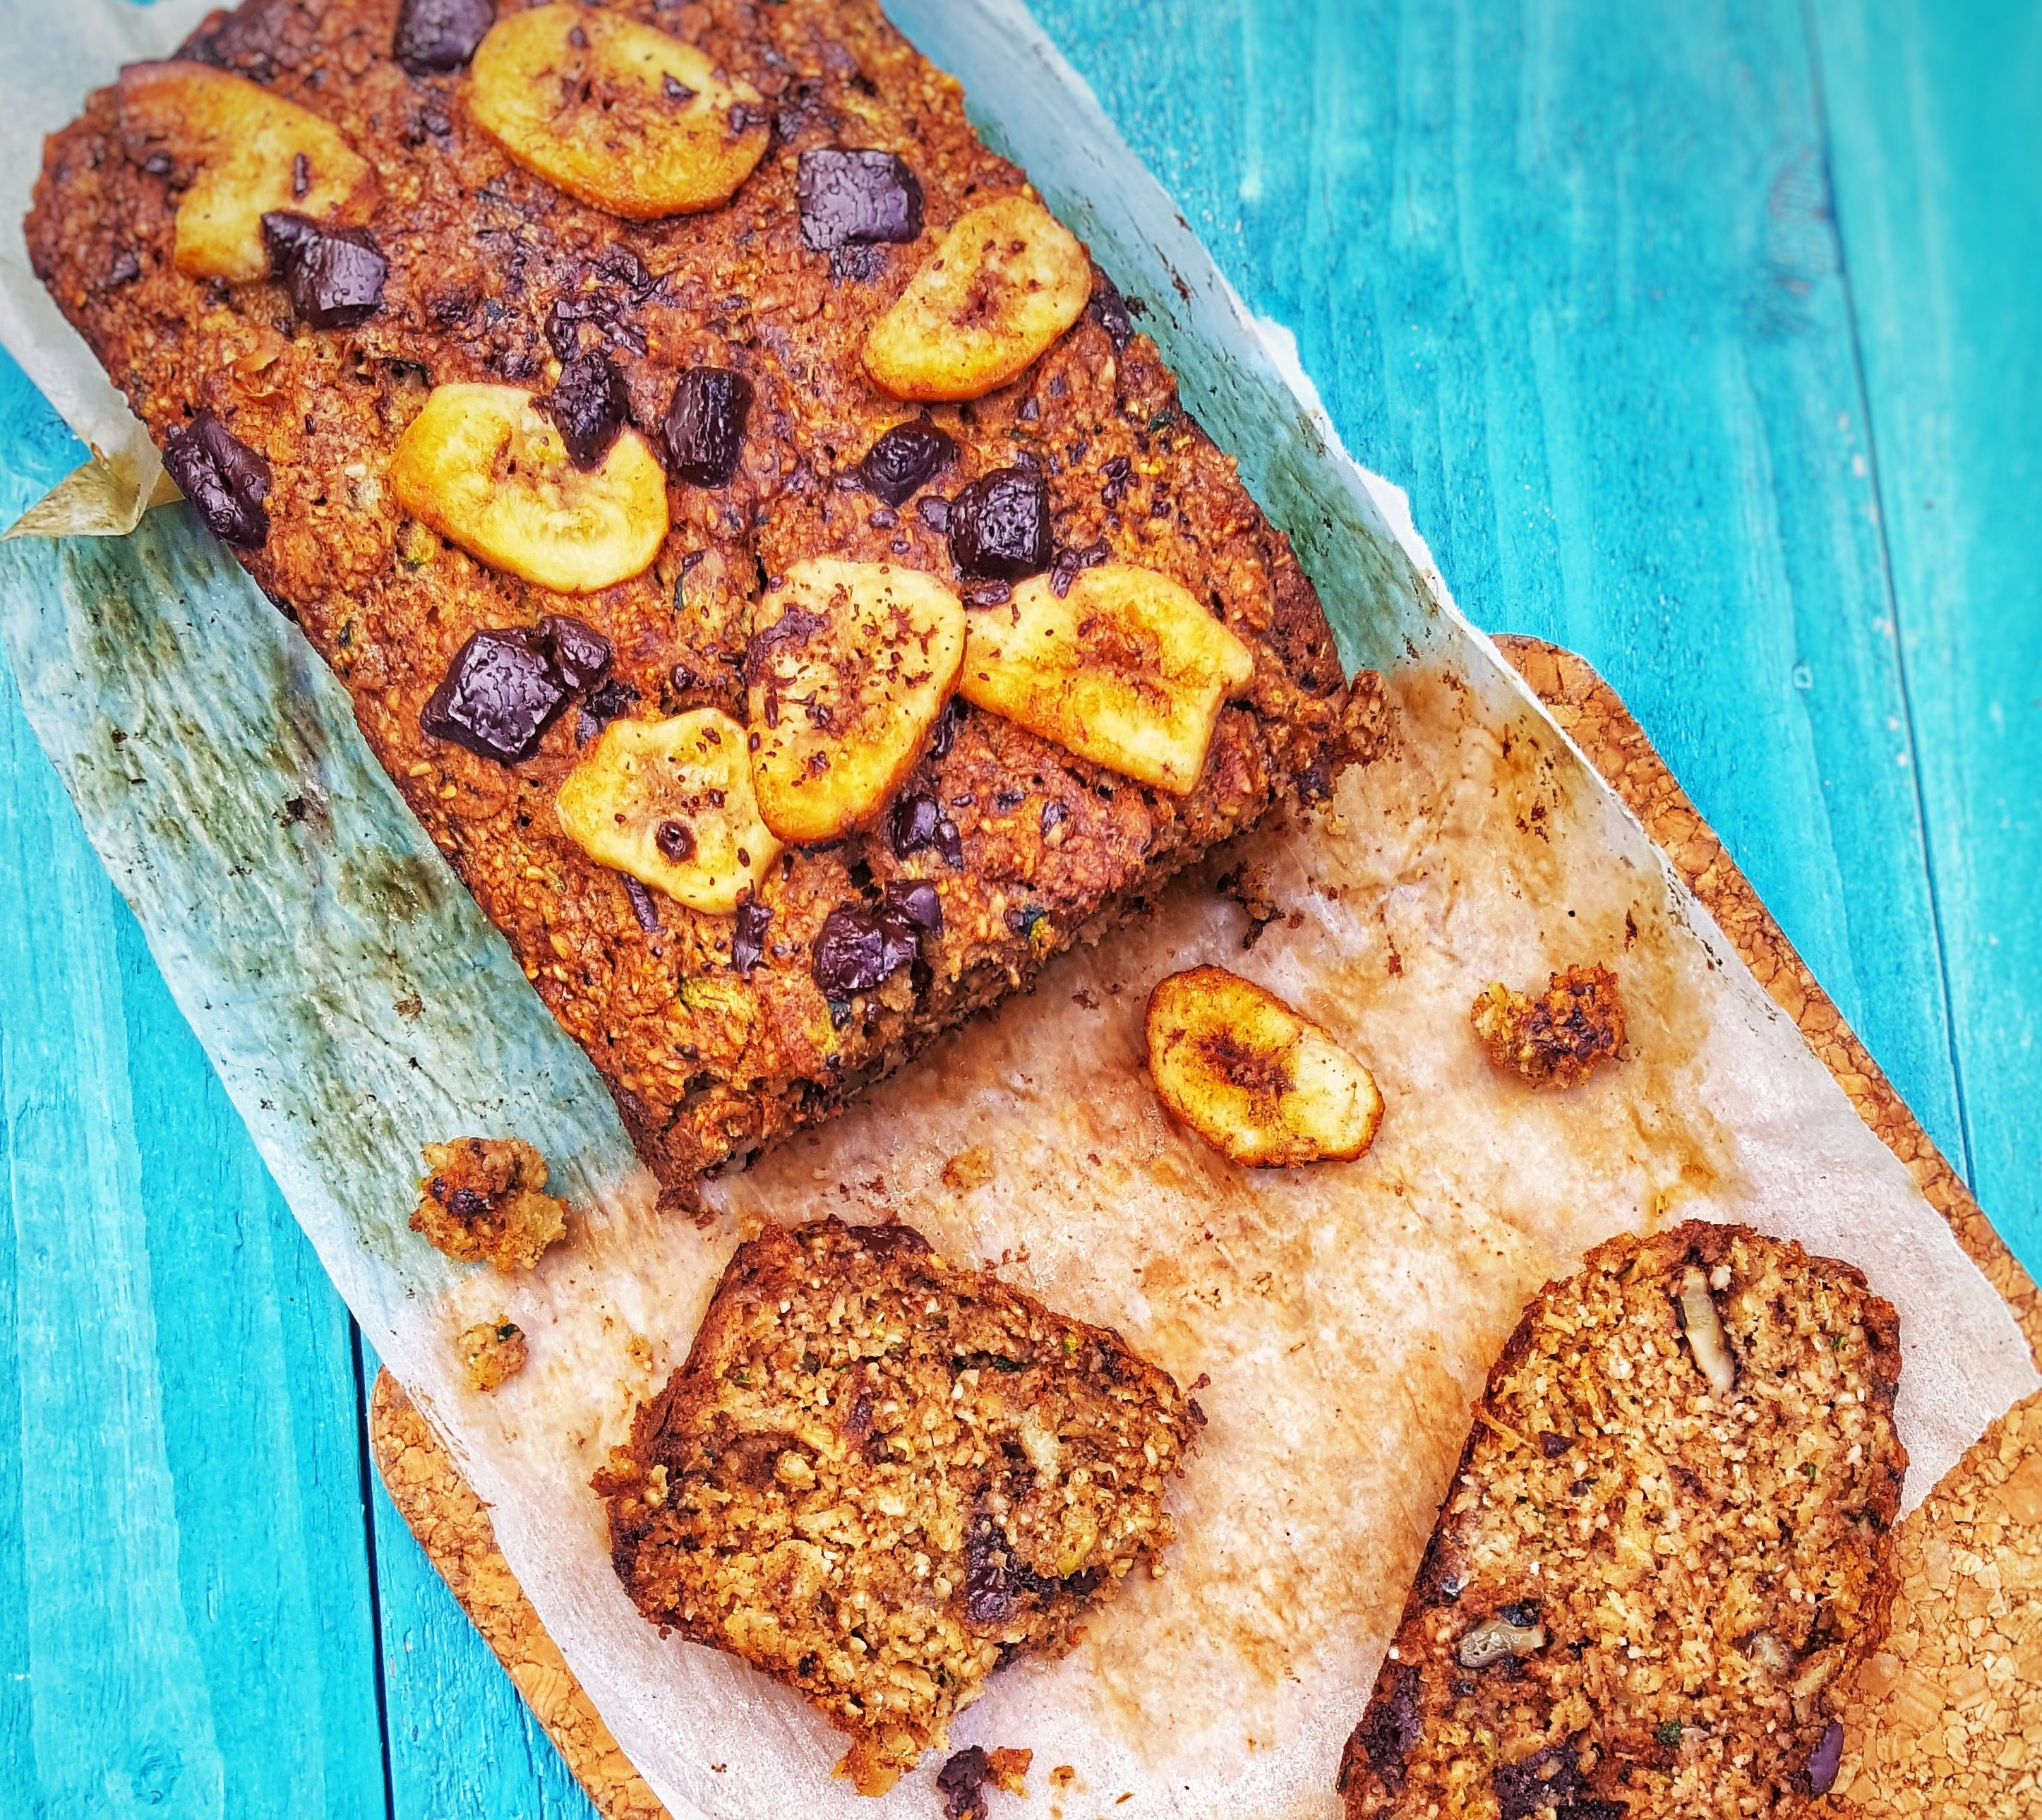 Courgette, Banana & Dark Chocolate Loaf; Delalicious